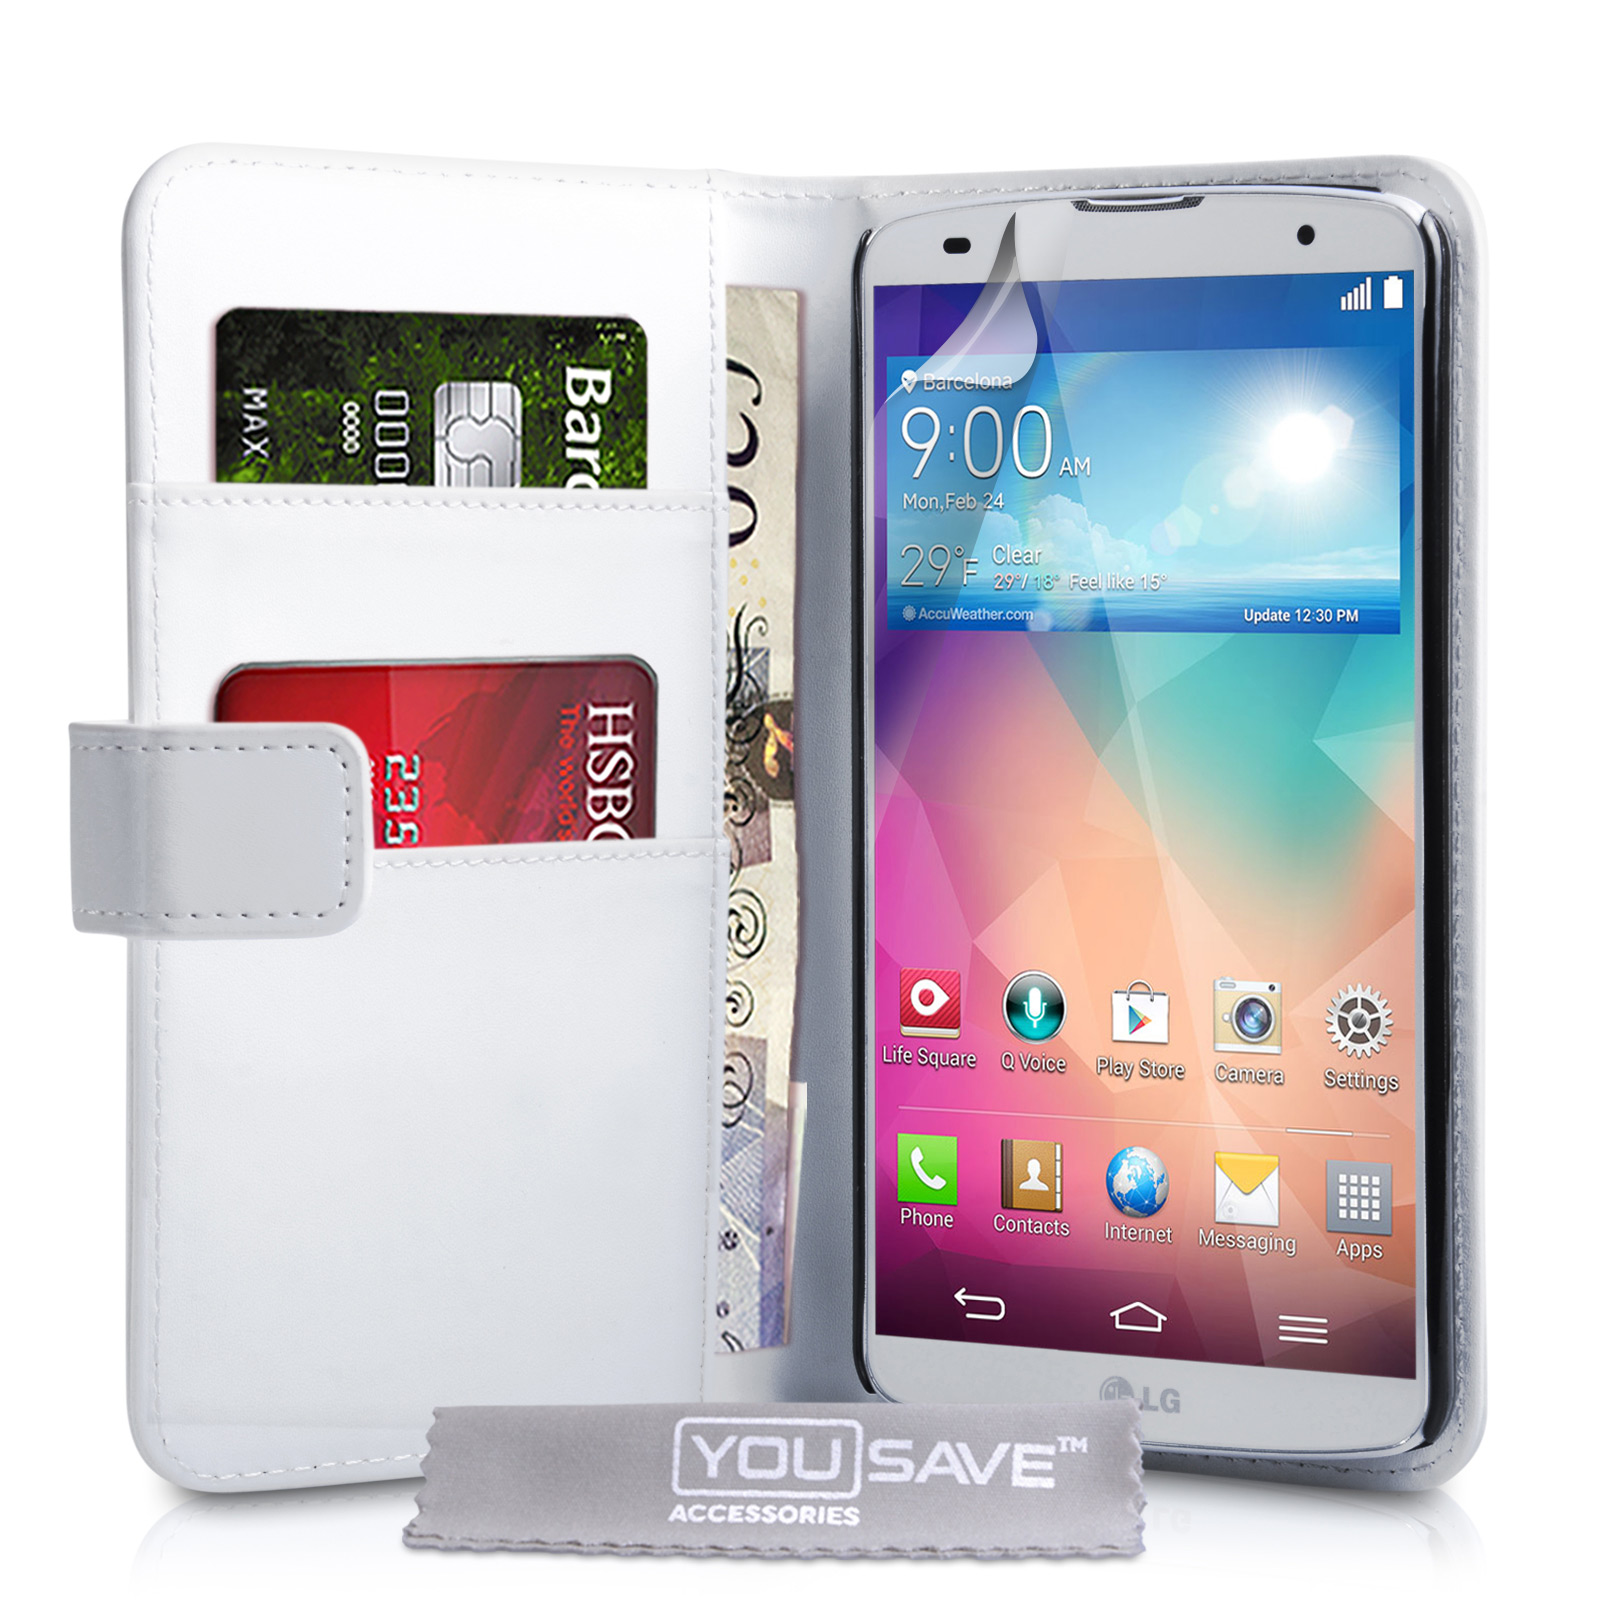 YouSave Accessories LG G Pro 2 Leather-Effect Wallet Case - White